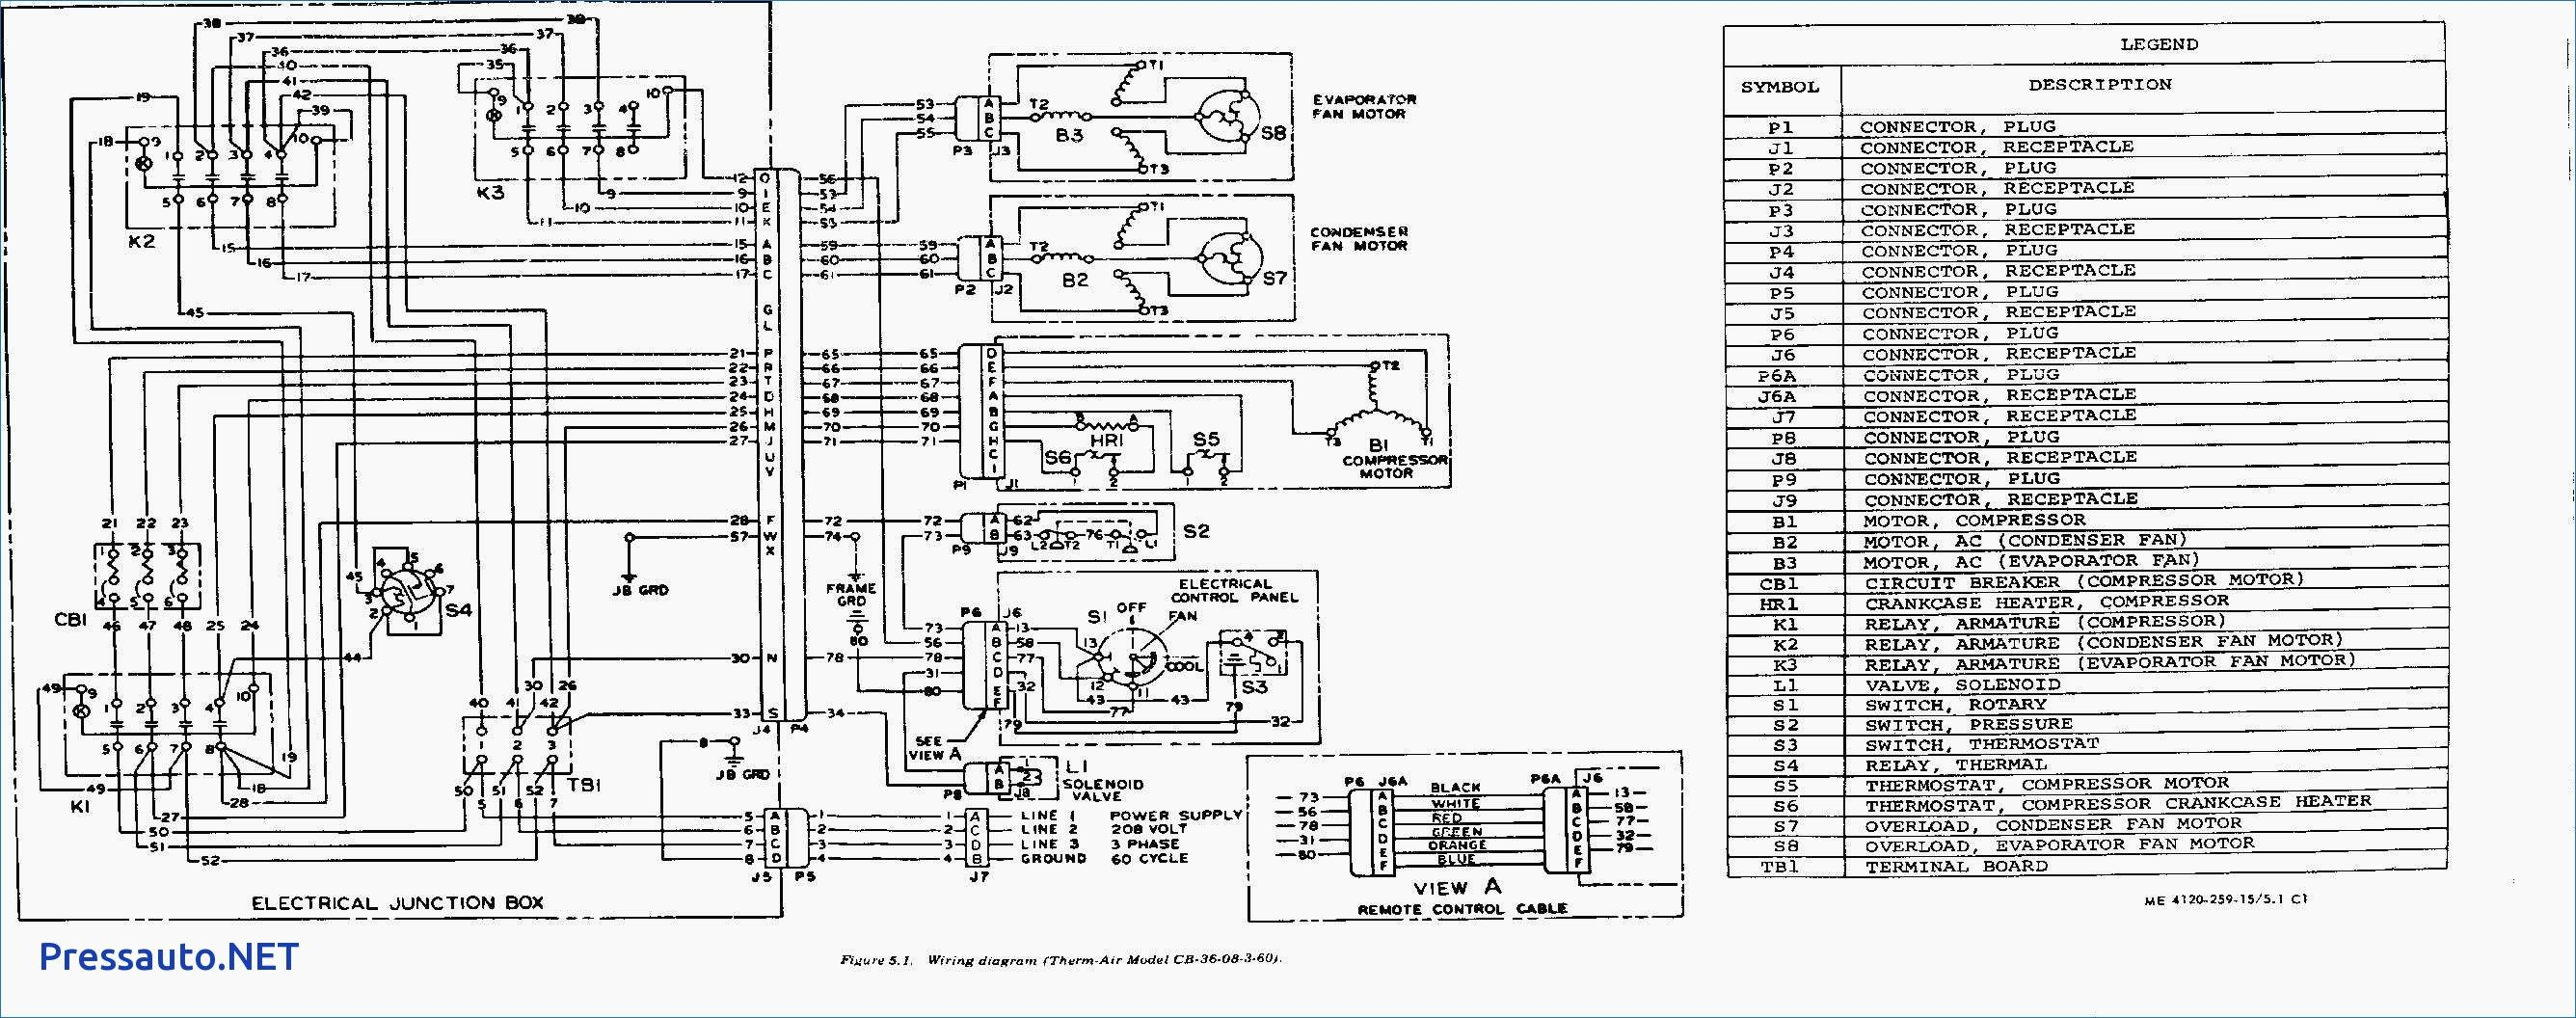 Related image Diagram, Thermostat wiring, Trane